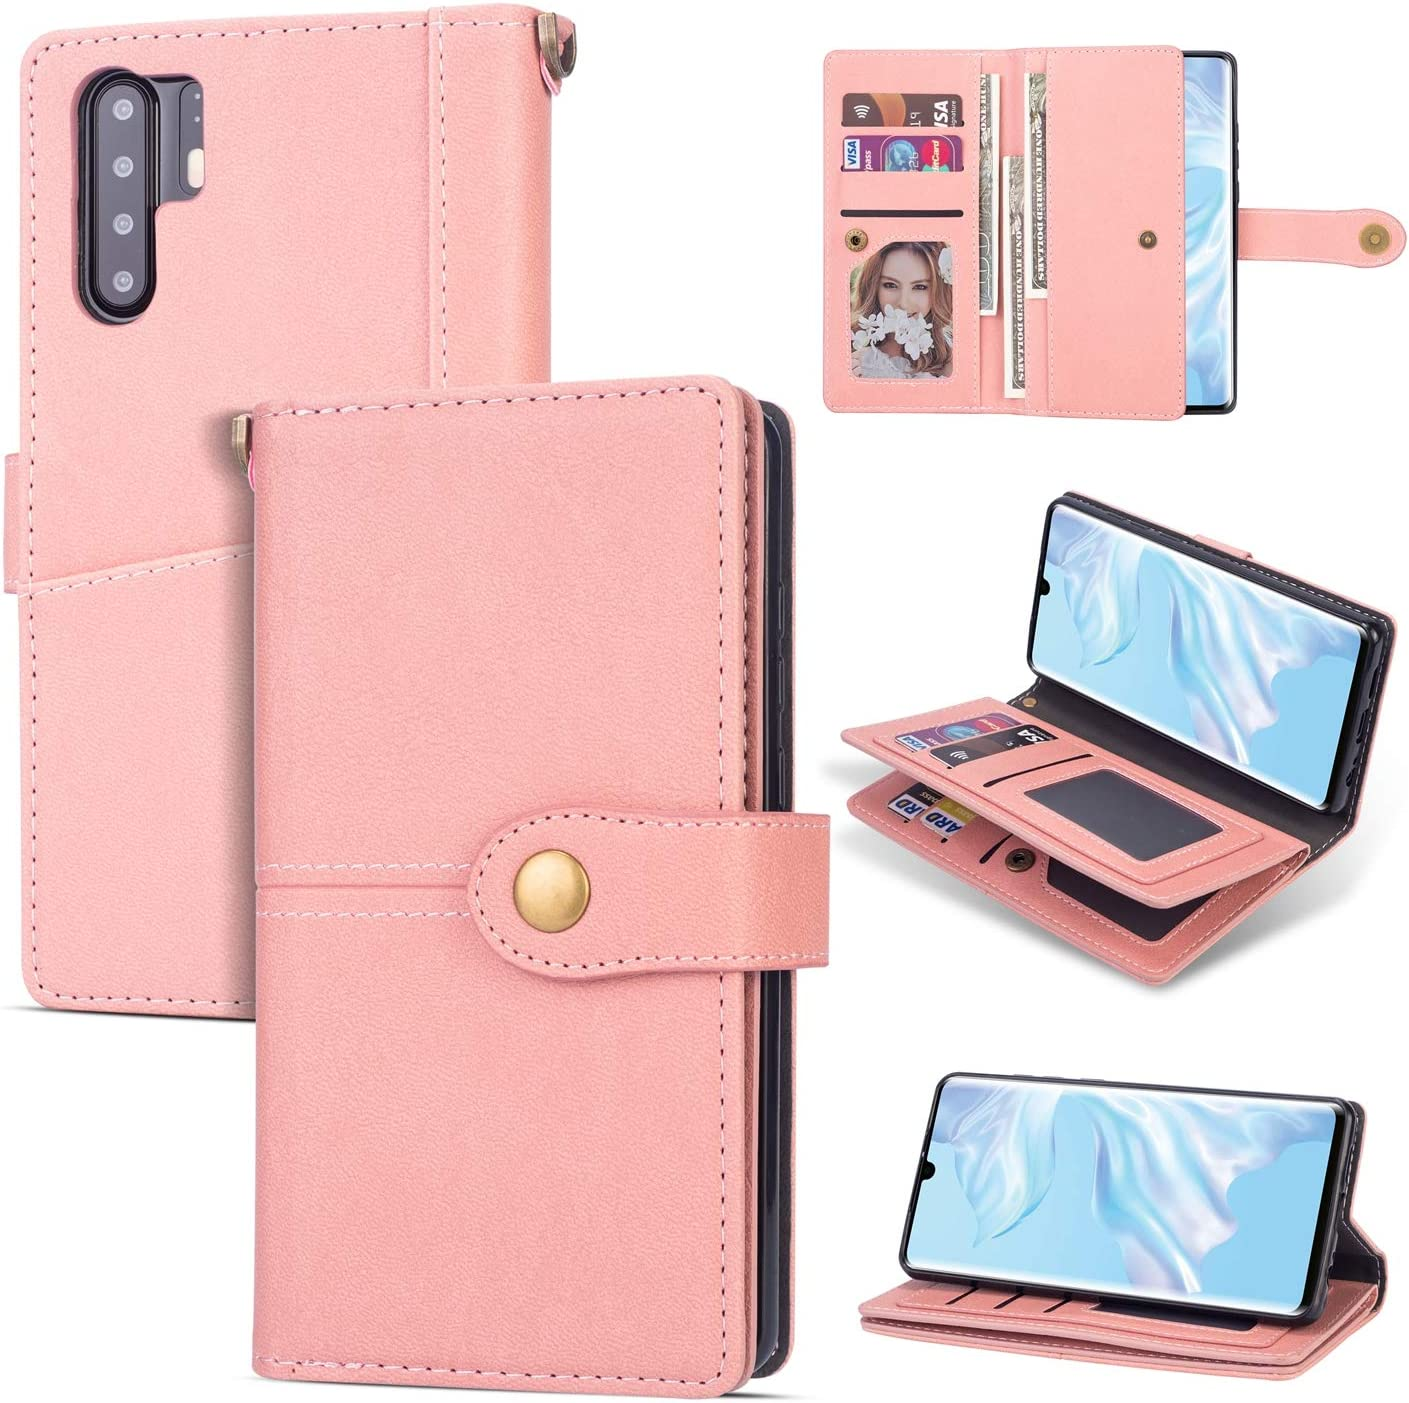 Cover for Huawei P30 PRO Leather Kickstand Card Holders Luxury Business Mobile Phone case with Free Waterproof-Bag Huawei P30 PRO Flip Case